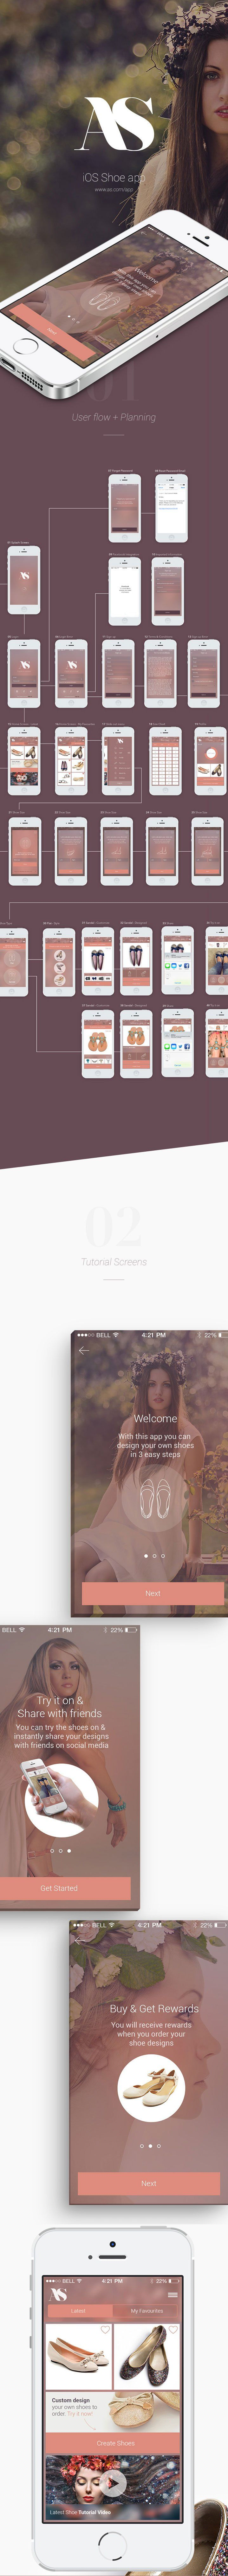 Feminine app- gorgeous colour scheme and incorporation of photography- White type on transparent background.  https://servedbytrackingdesk.com/cVe7WHm51gq9A4Ln8